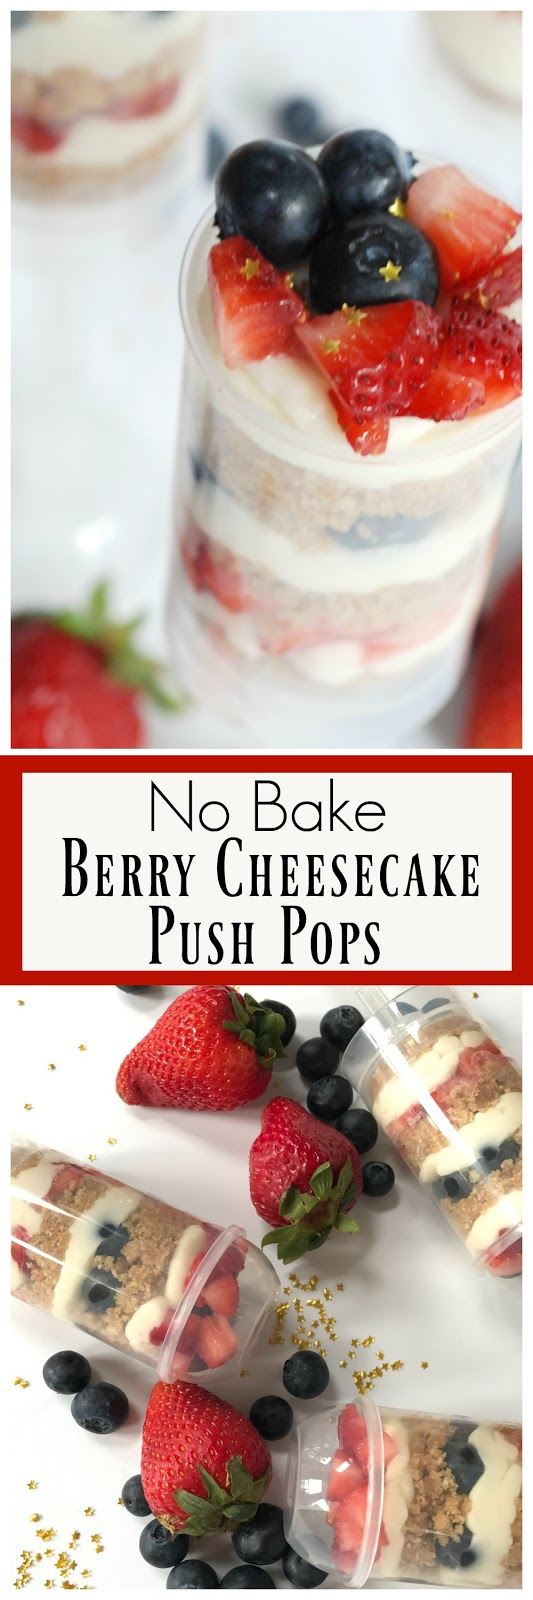 no bake berry cheesecake push pop